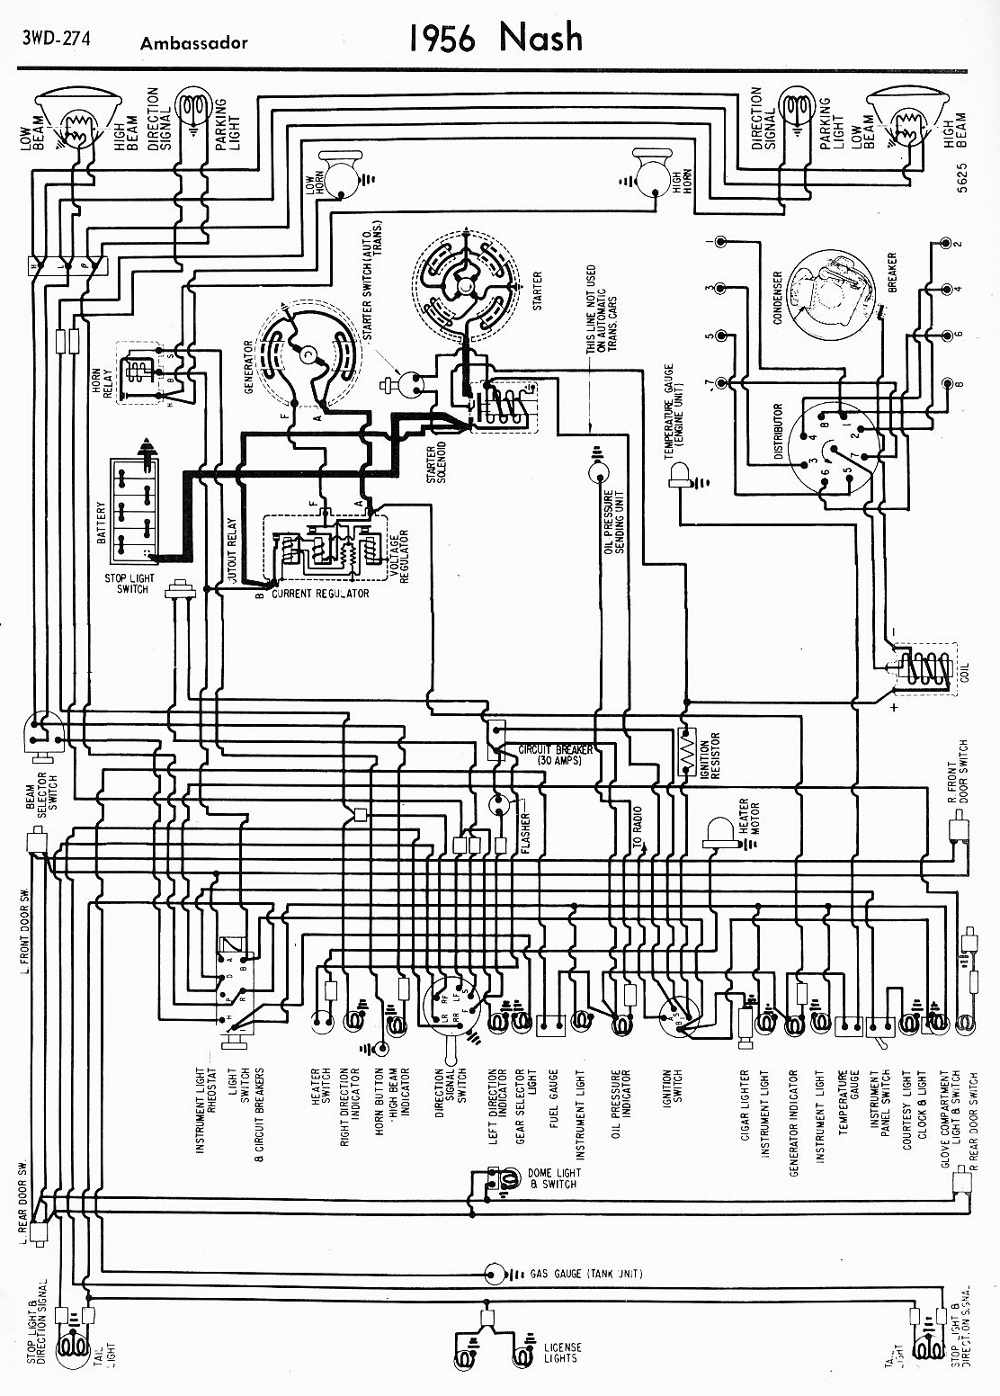 colorful eurovox wiring diagram elaboration everything you need to led circuit diagrams fancy eurovox wiring diagram image collection wiring schematics